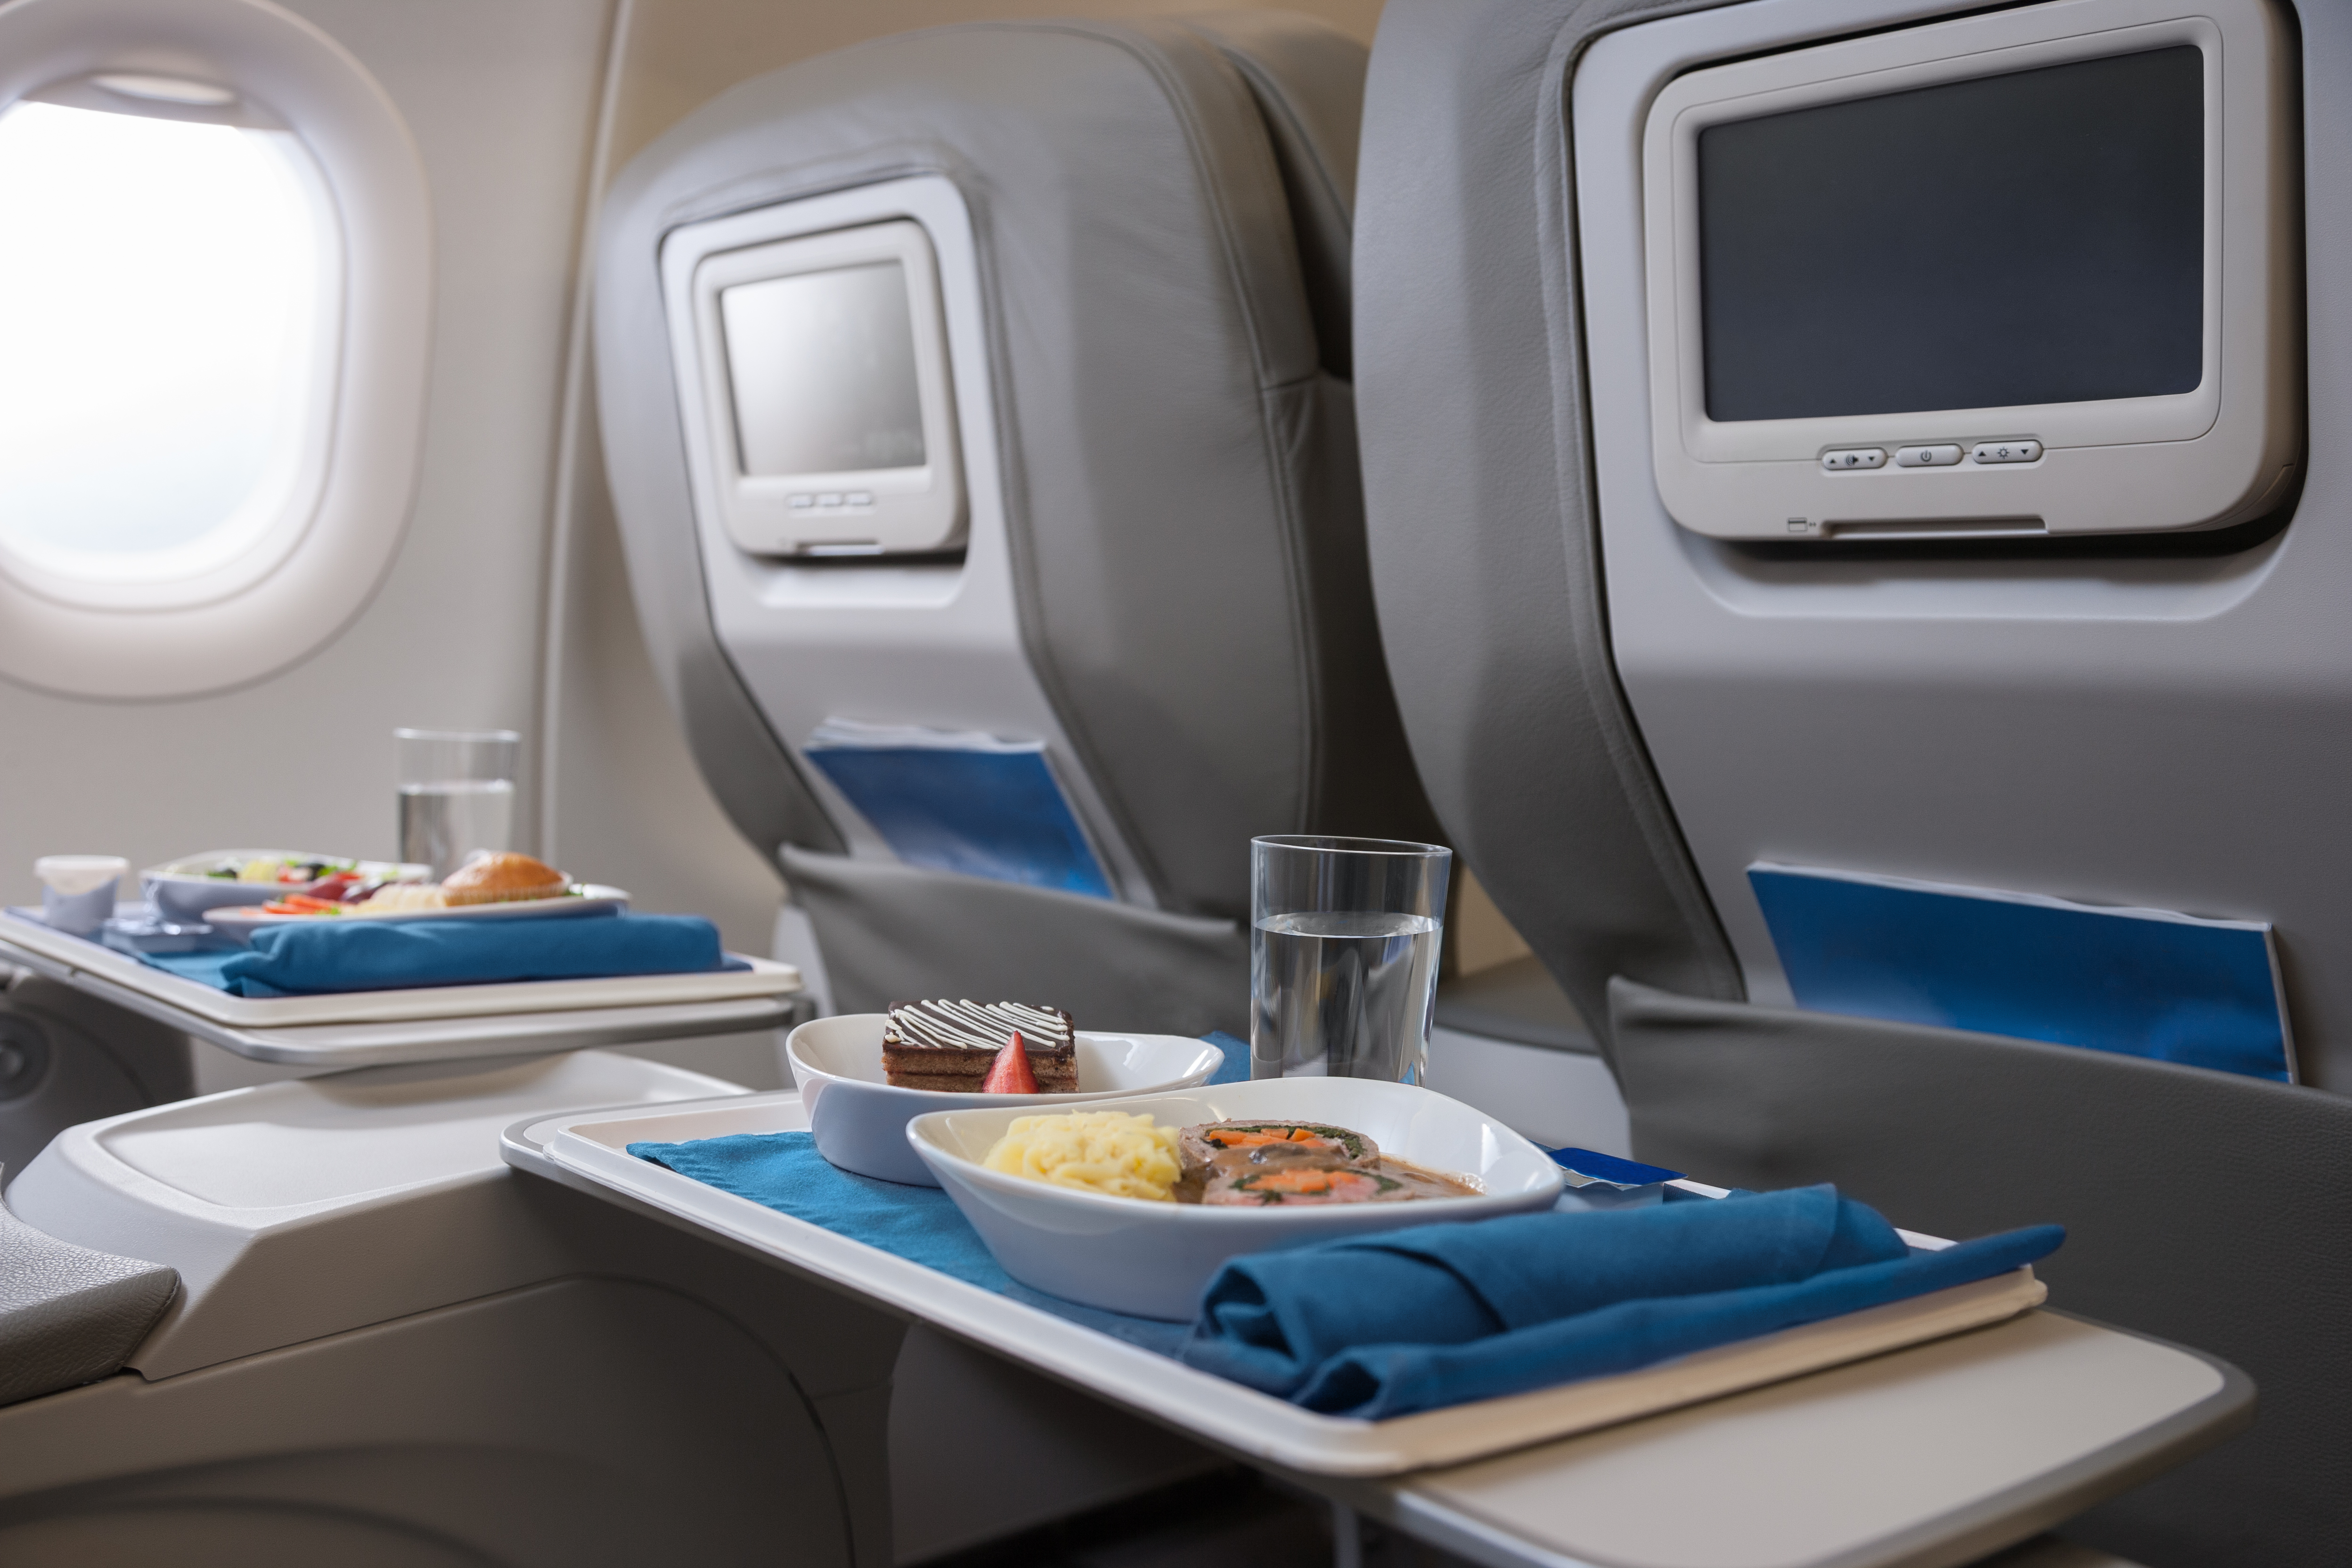 Airline meals served on seat tables